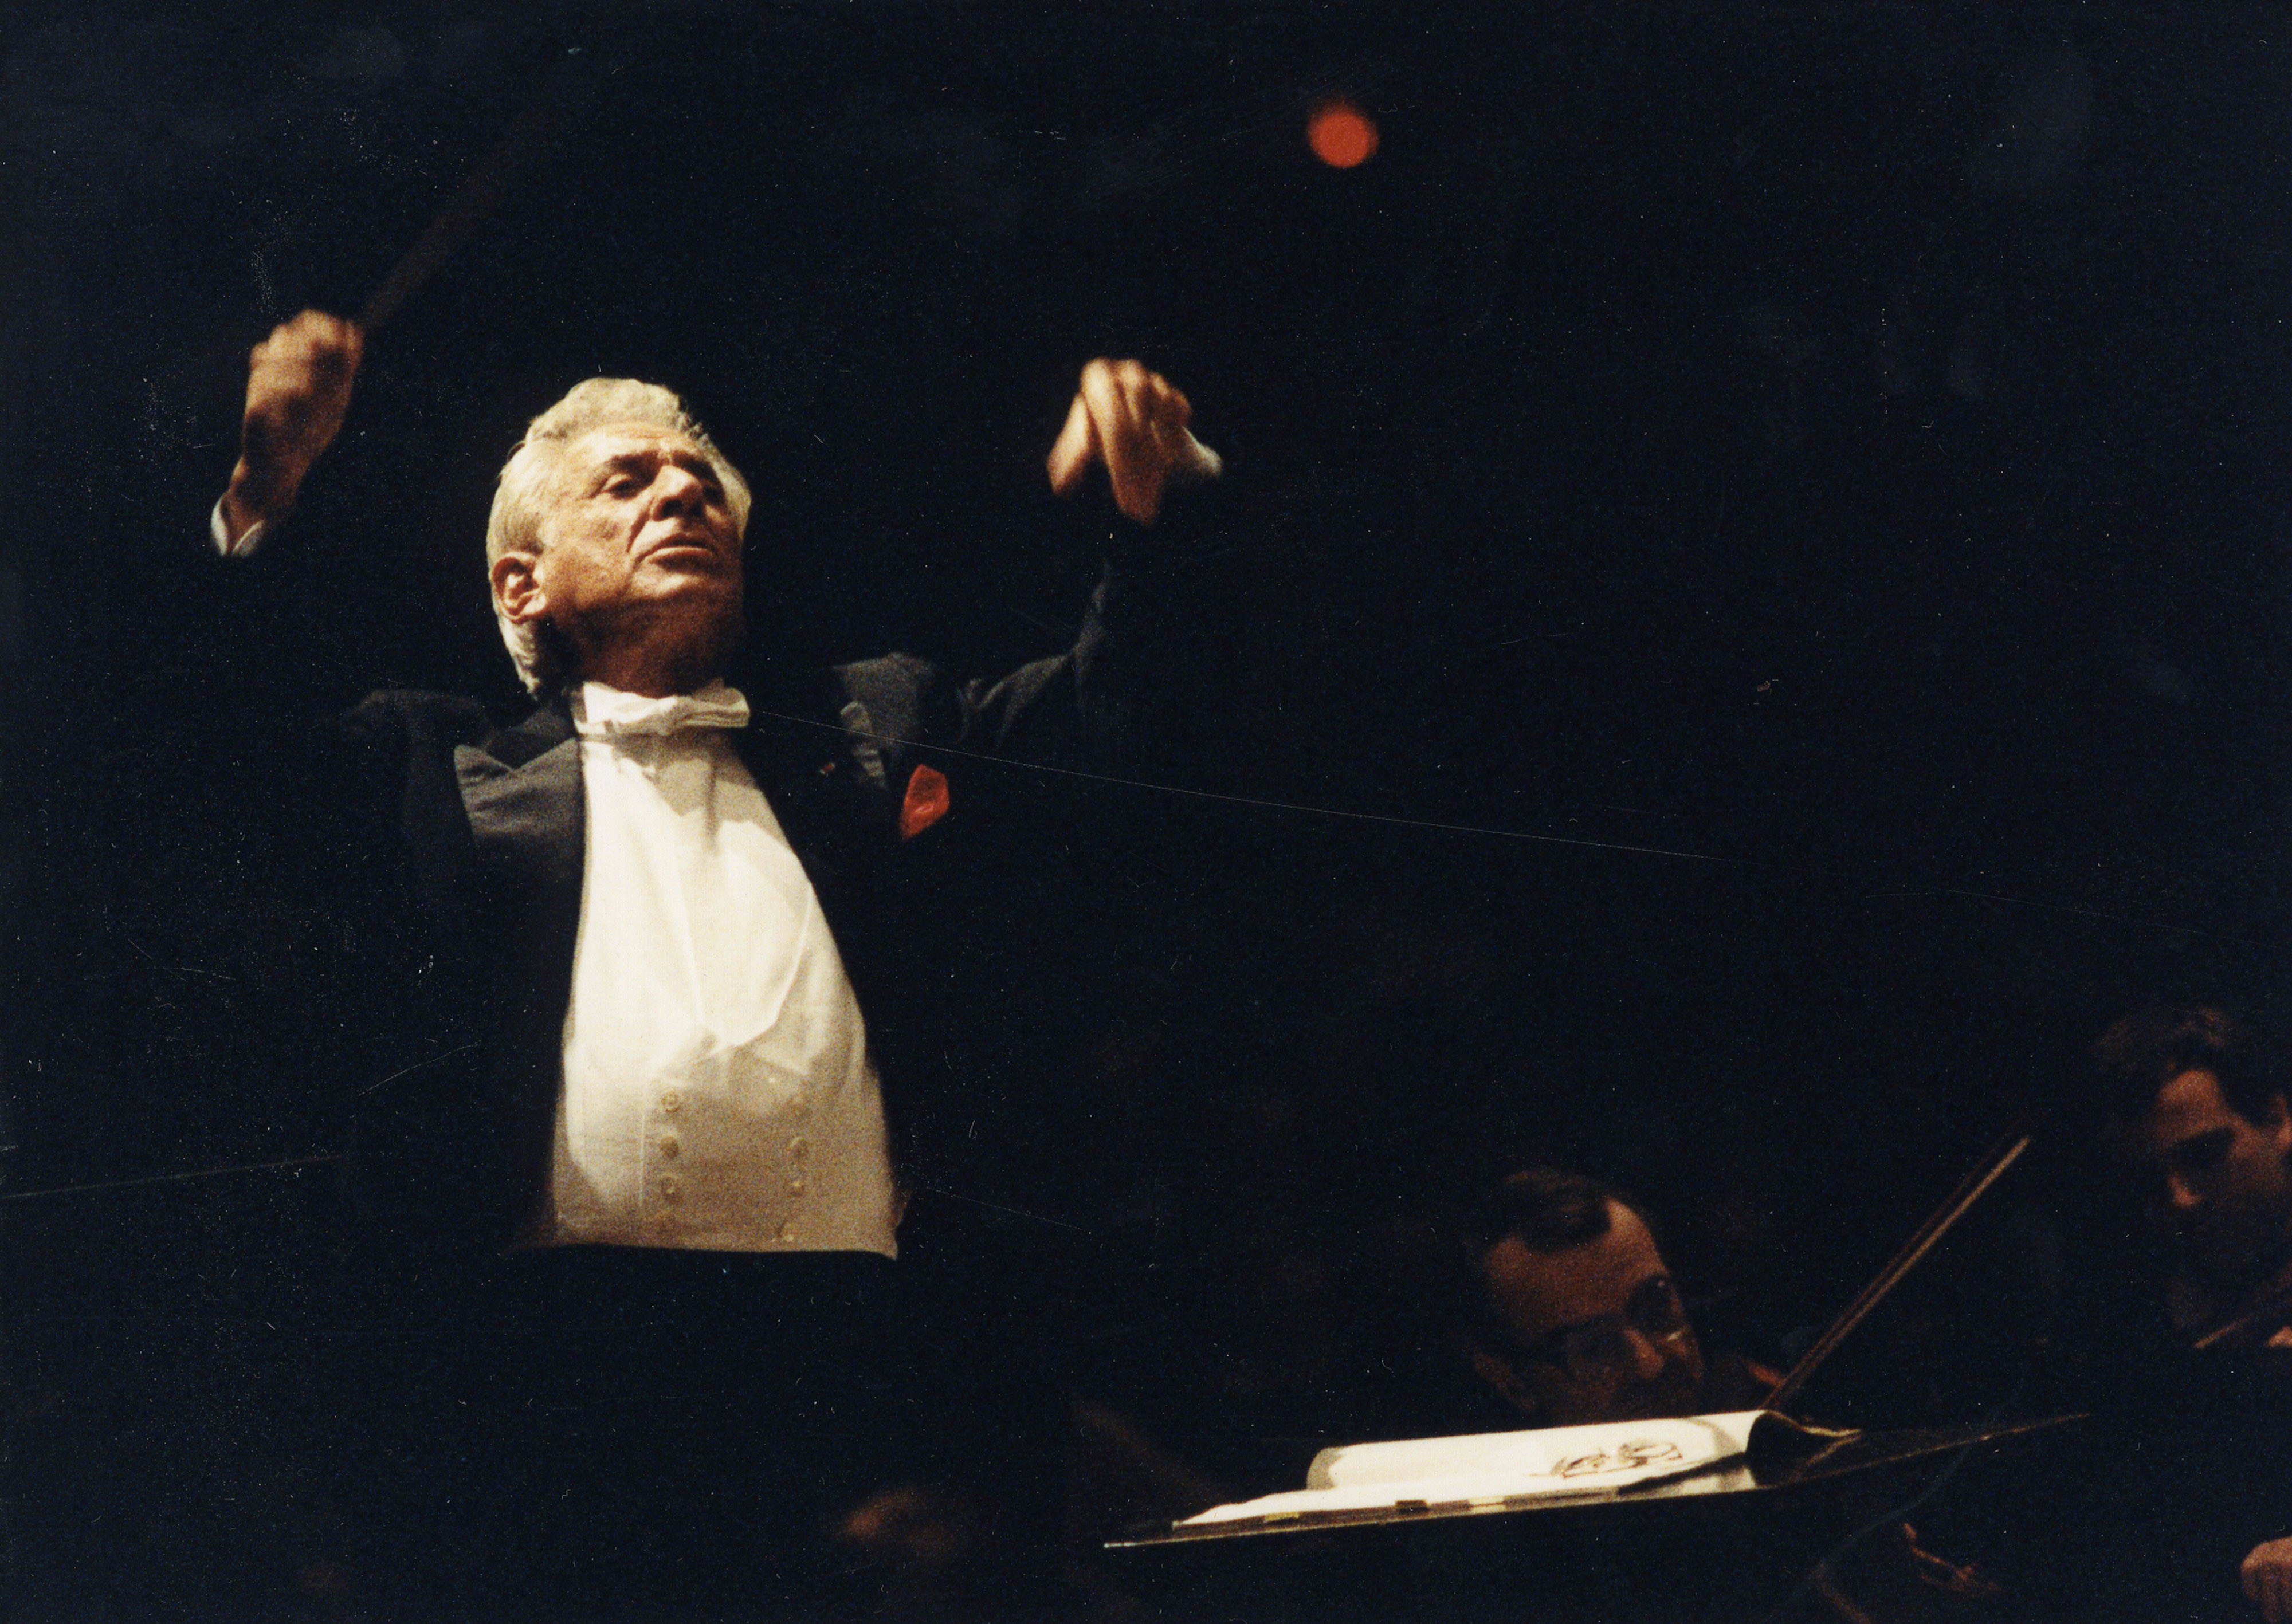 Image from Bernstein Benefit, Oct. 29, 1988 - Leonard Bernstein, conducting